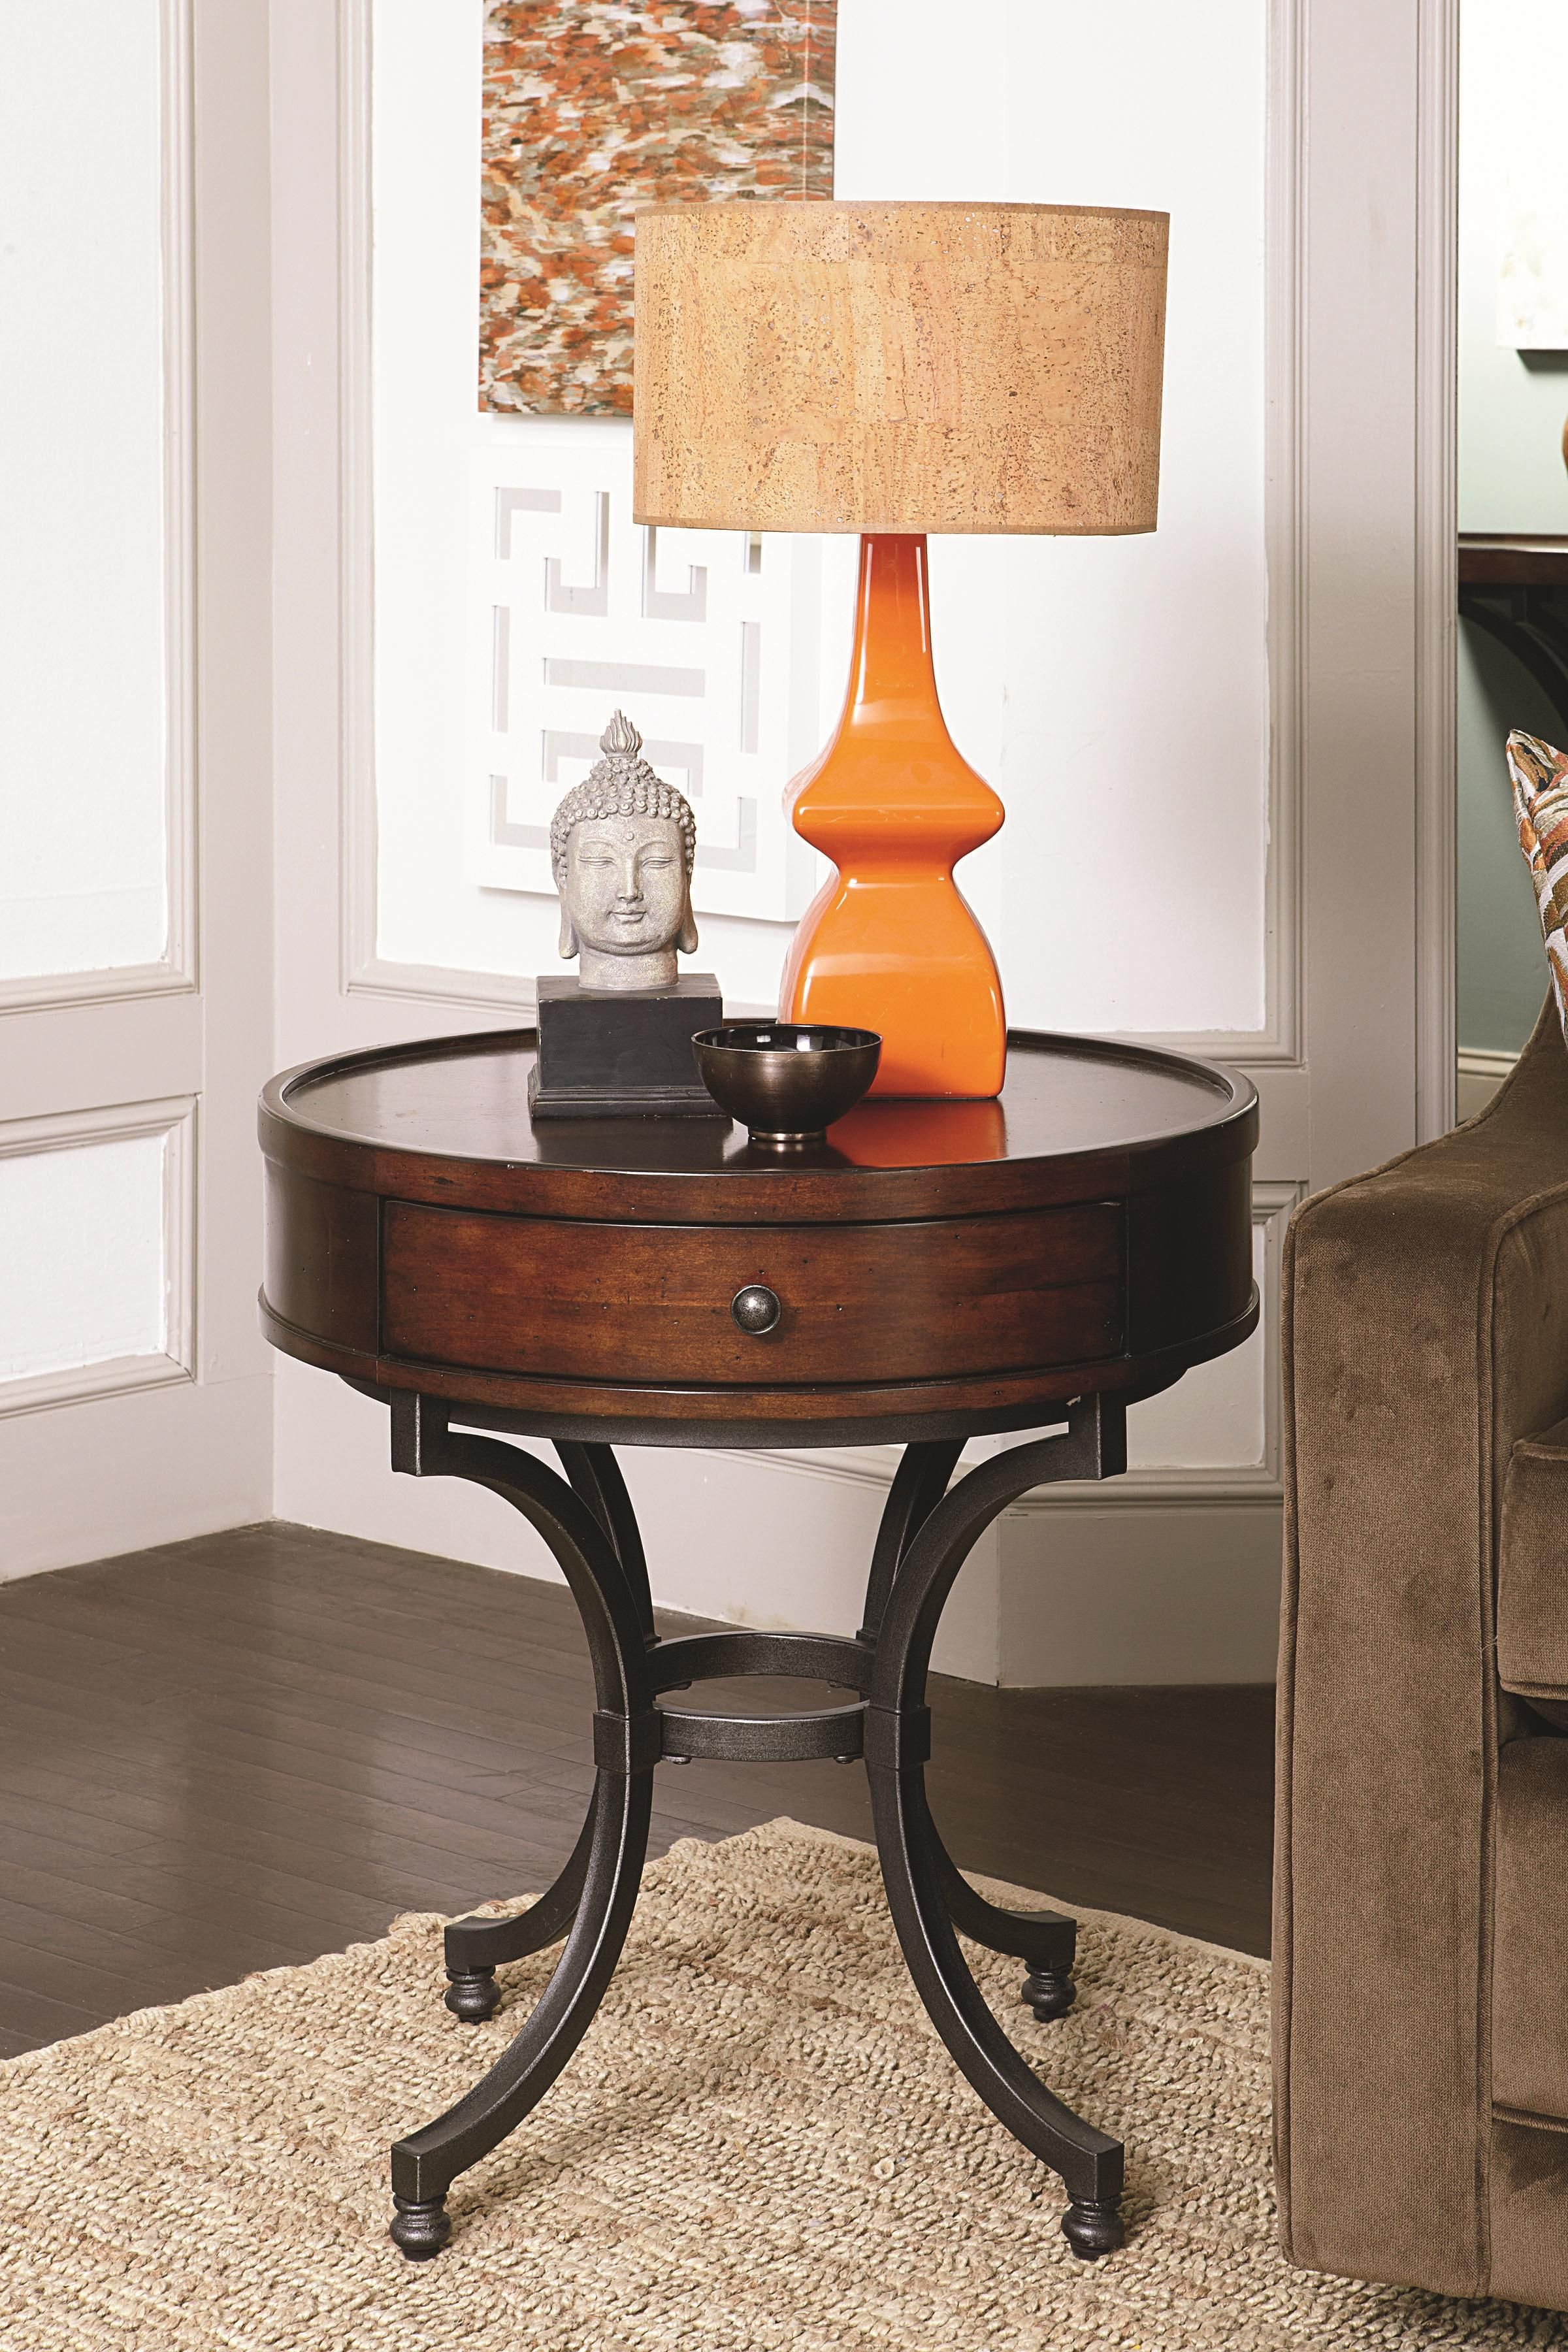 barrow sofa table designs for drawing room in india enclosed end tables round with 1 drawer